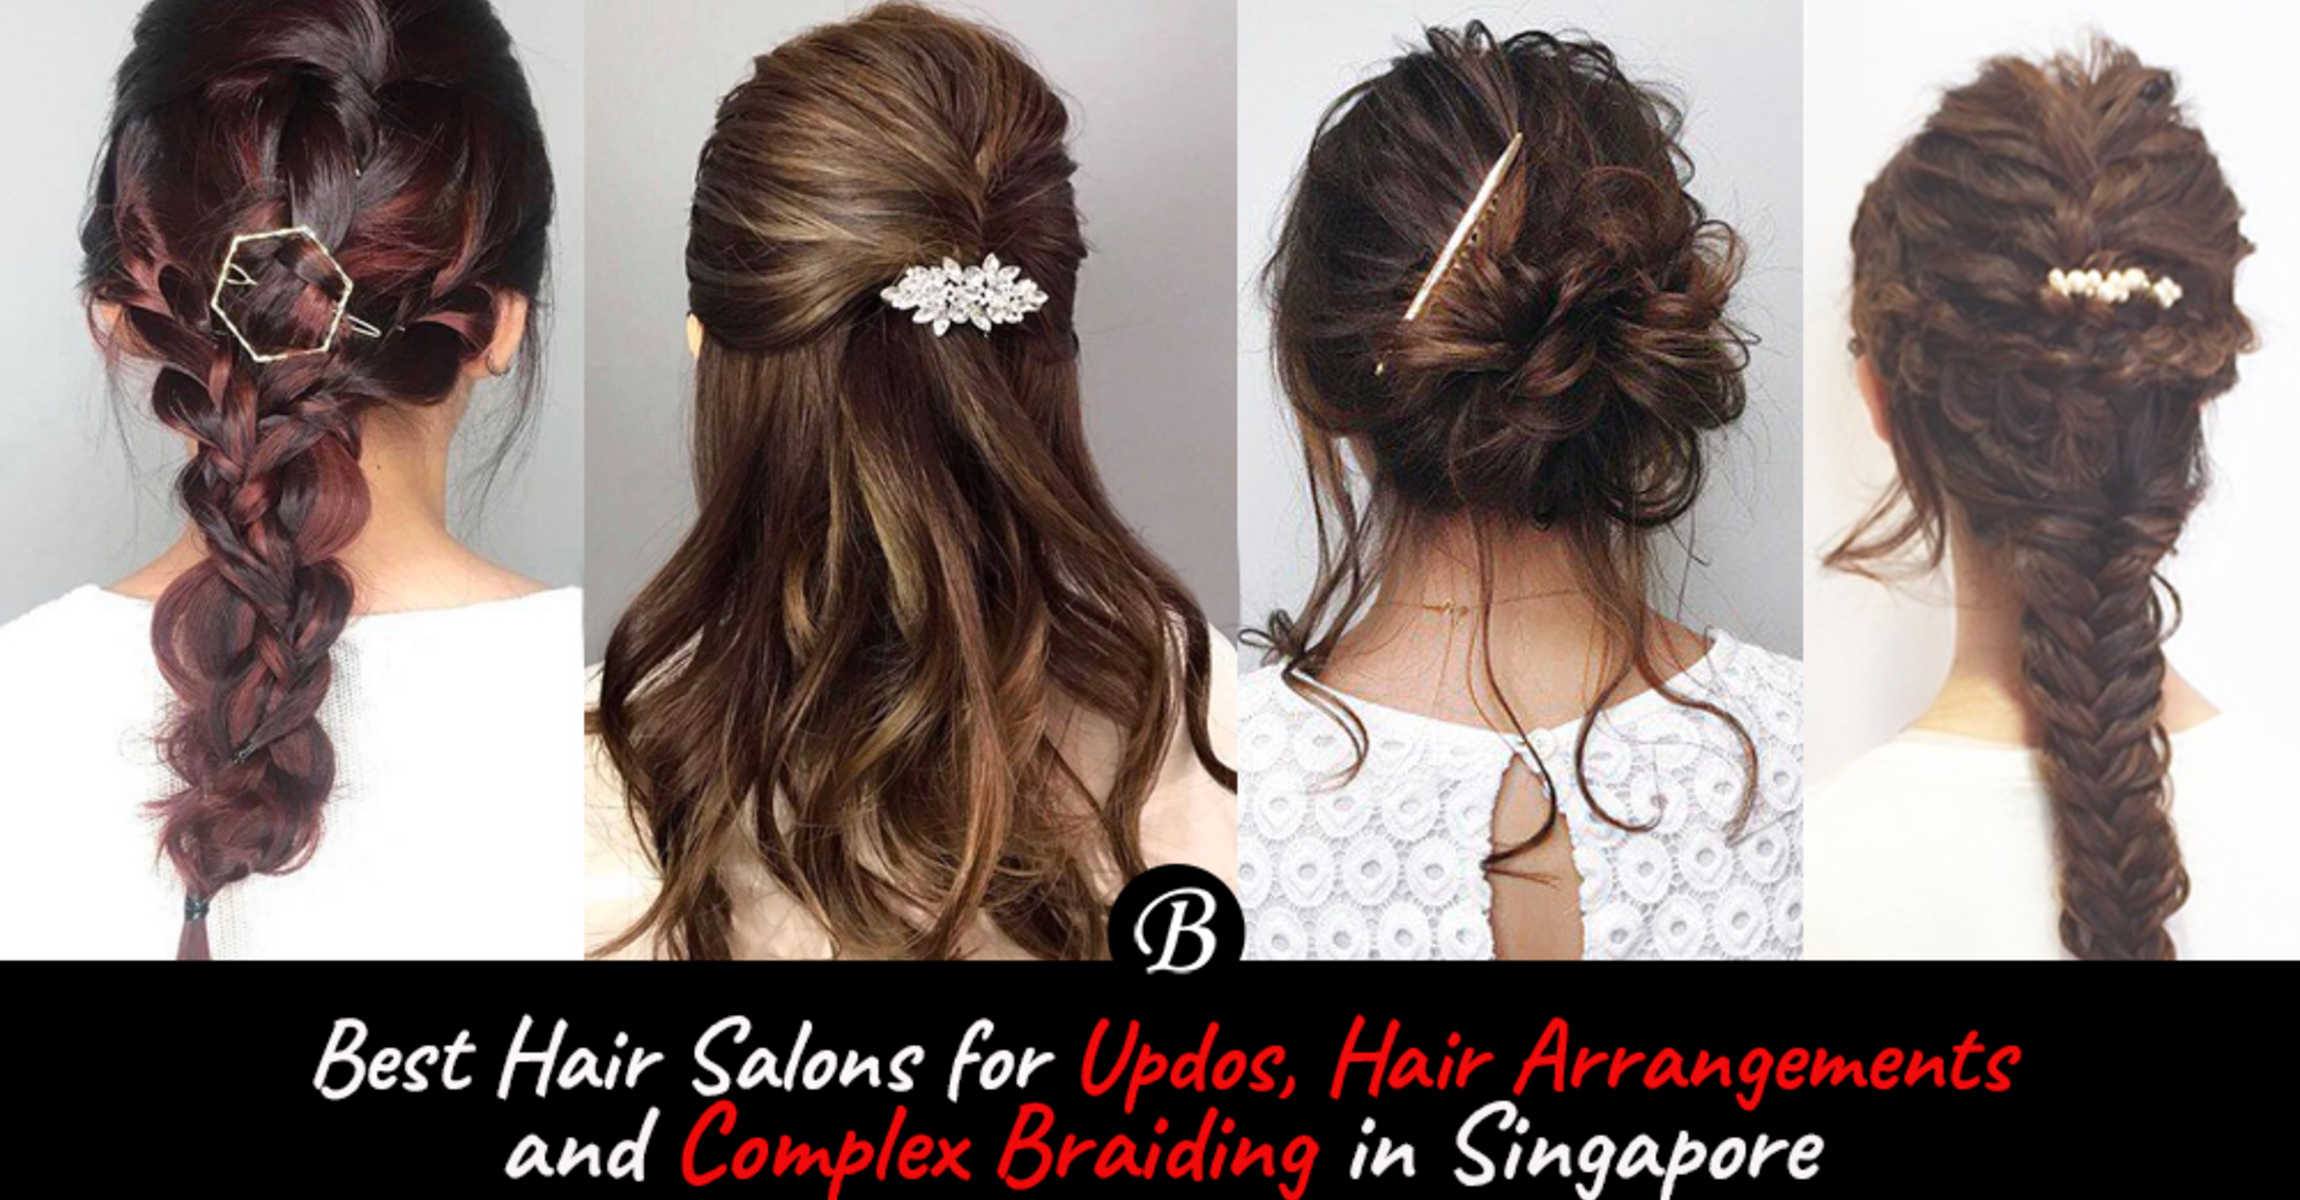 c6a8769f9 Best Hair Salons for D&D Hairstyling, Weddings Updos, Party Hair  Arrangement and Complex Braiding in Singapore